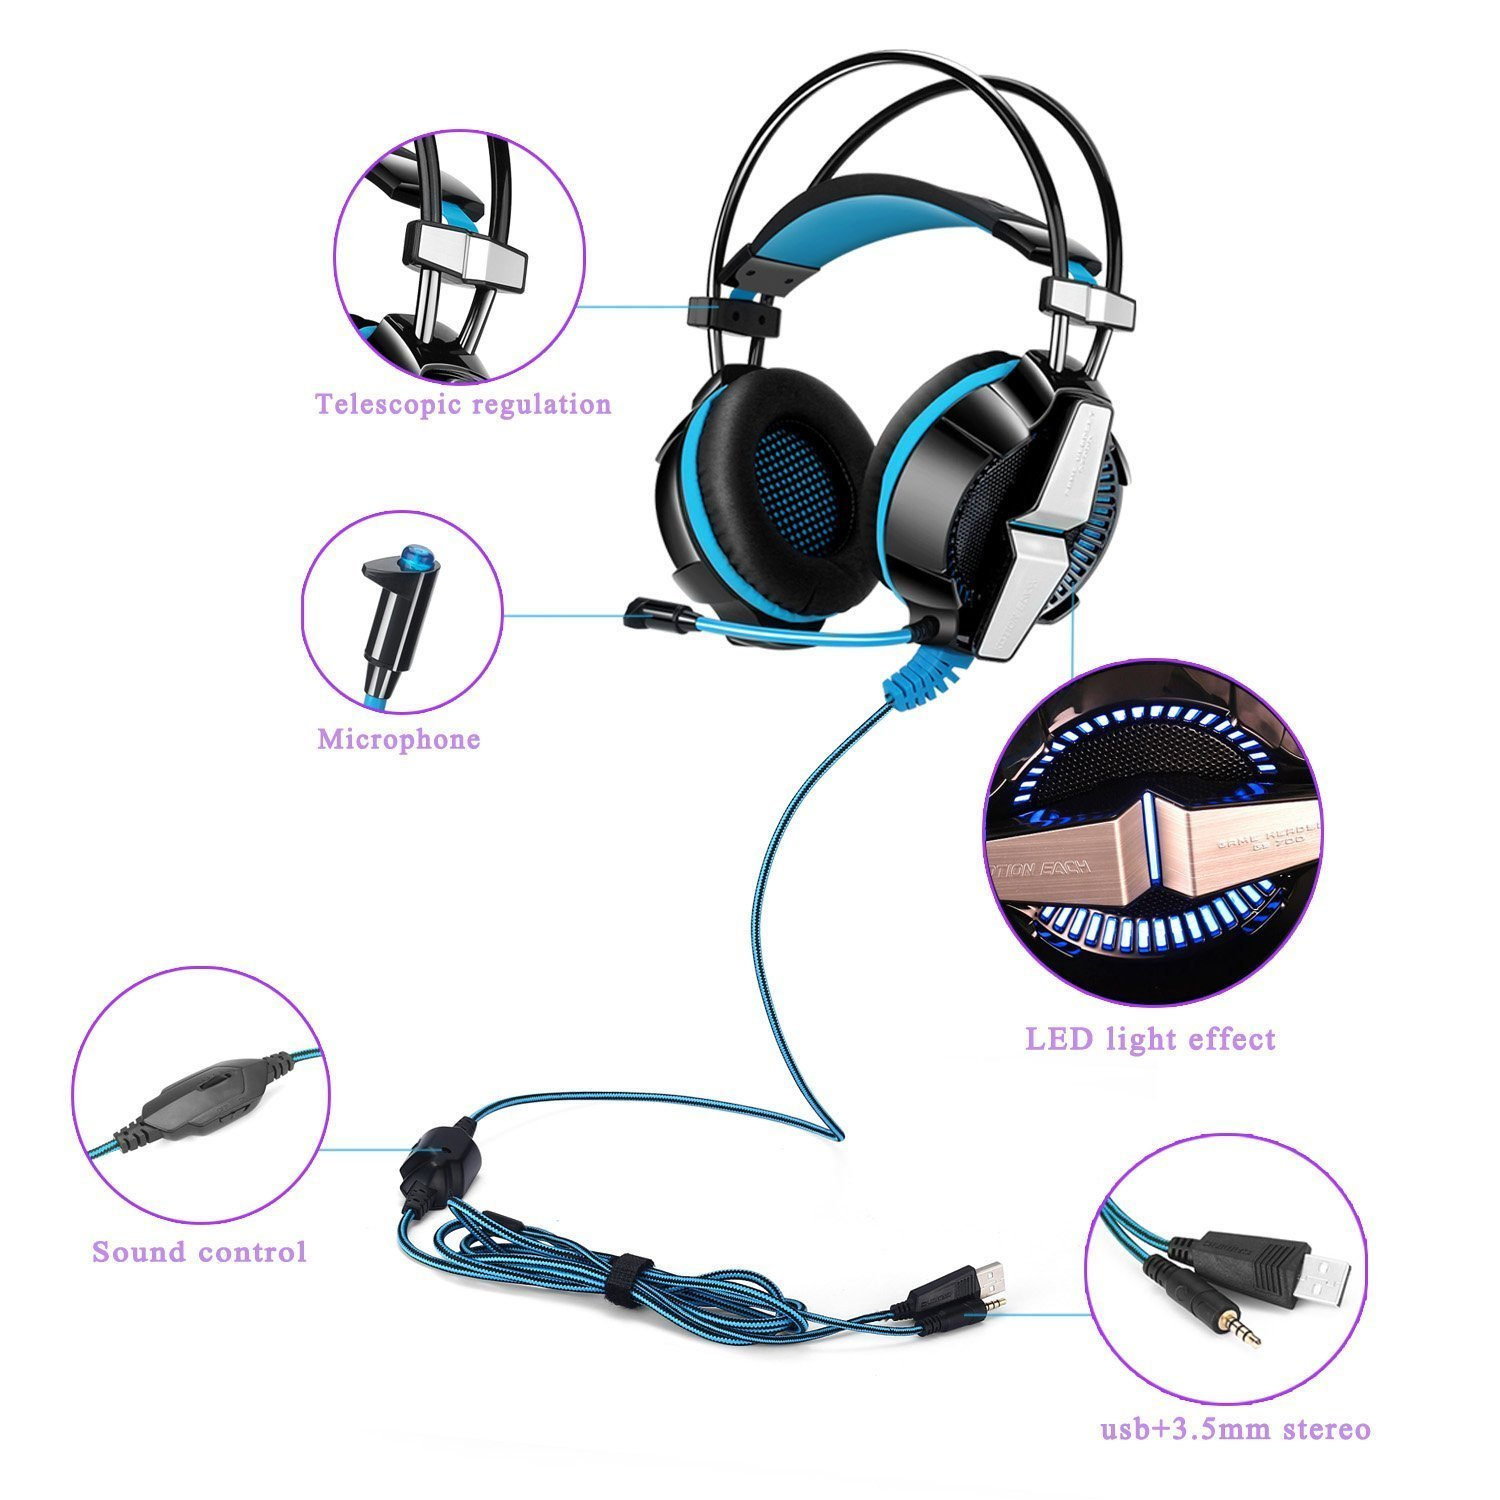 ZaKitane KOTION EACH GS700 3.5mm LED Gaming Headset for PS4 / XBOX ONE S, Over-Ear Headphone Headband with Mic for PC Computer Game Apple iPhone iPad Samsung Tablet PlayStation 4 (Black & Blue)